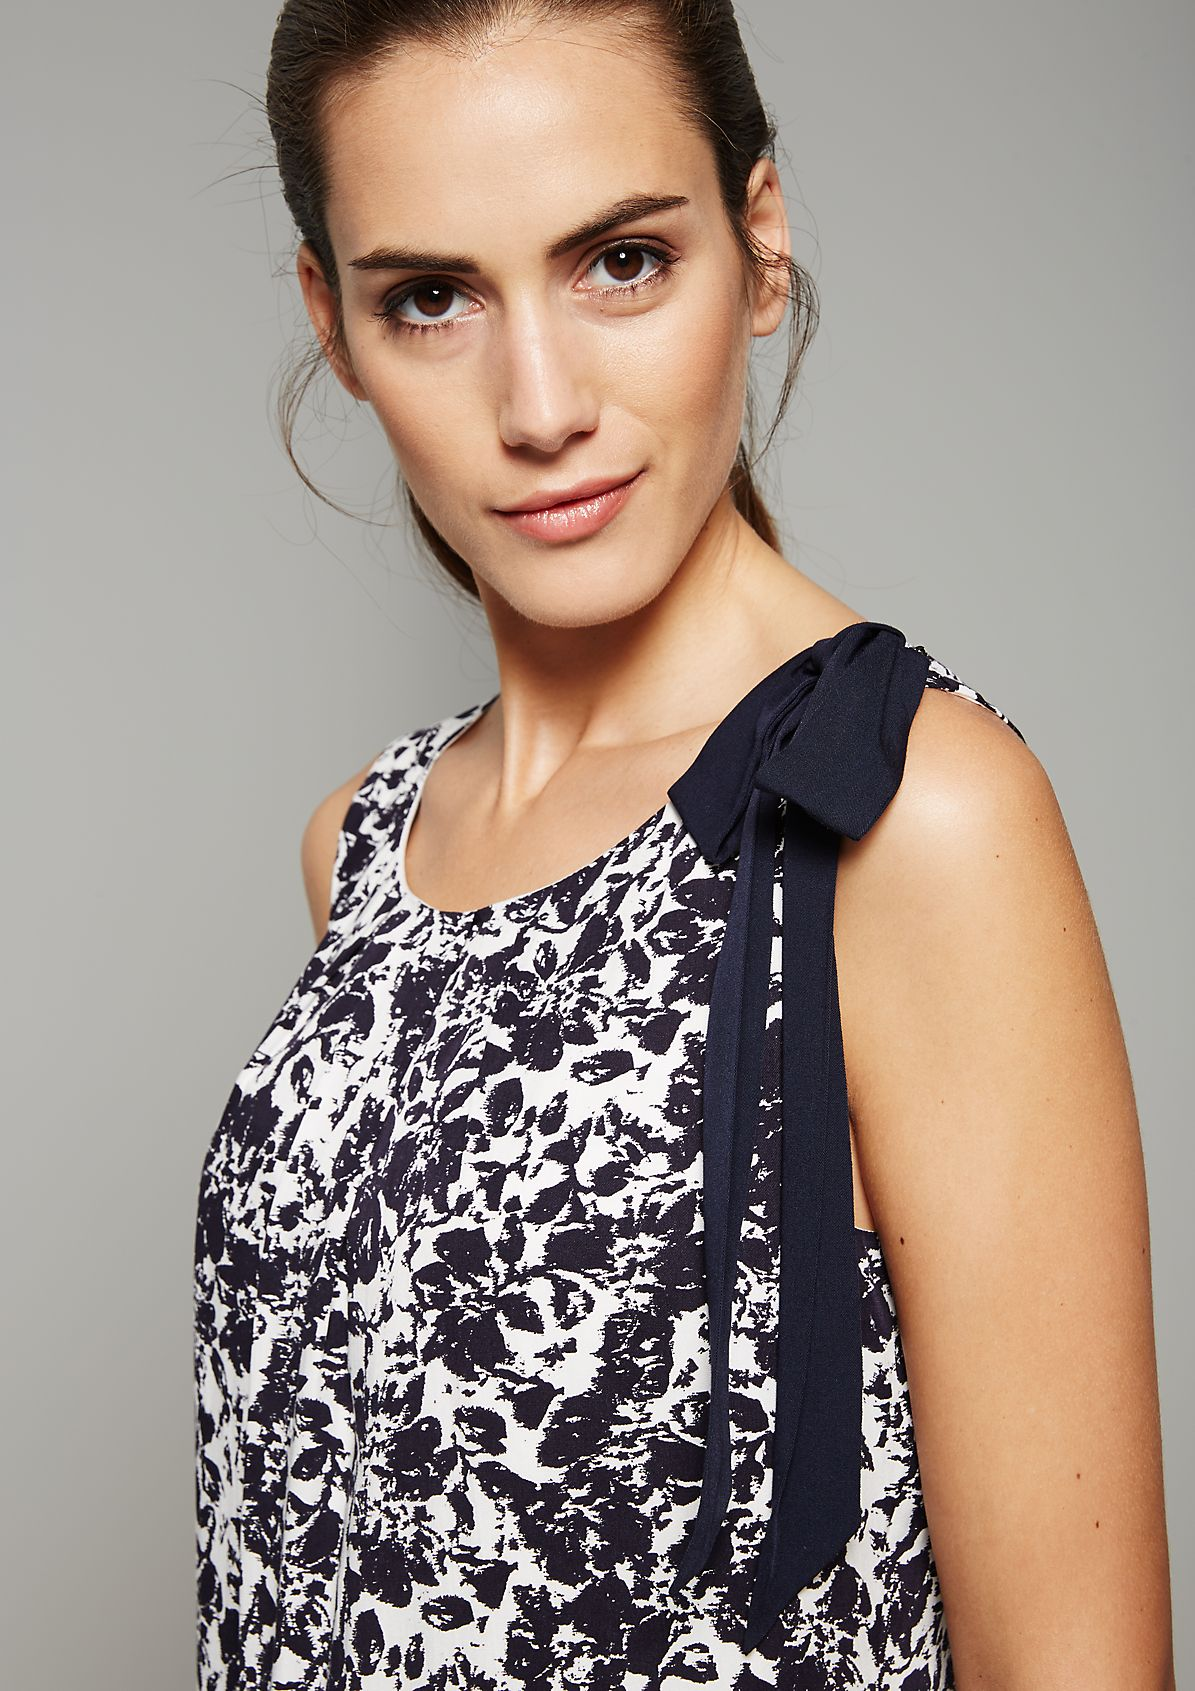 Lightweight summer dress with an abstract floral print from s.Oliver